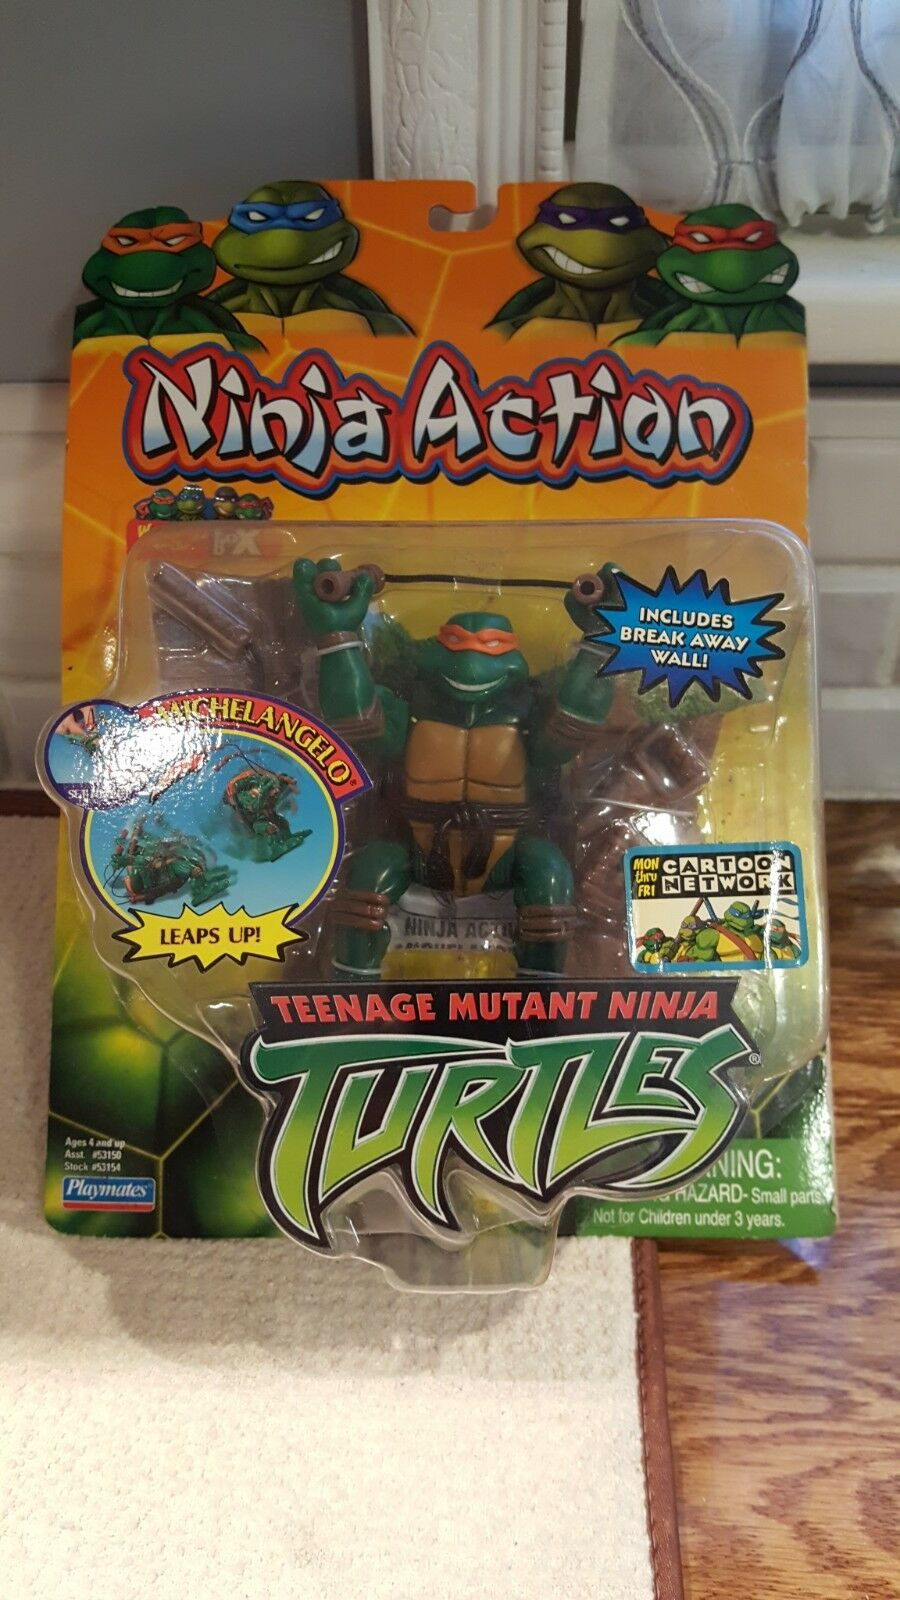 Michelangelo Ninja Action Leaps up Teenage Mutant Ninja Turtles 2004 Playmates